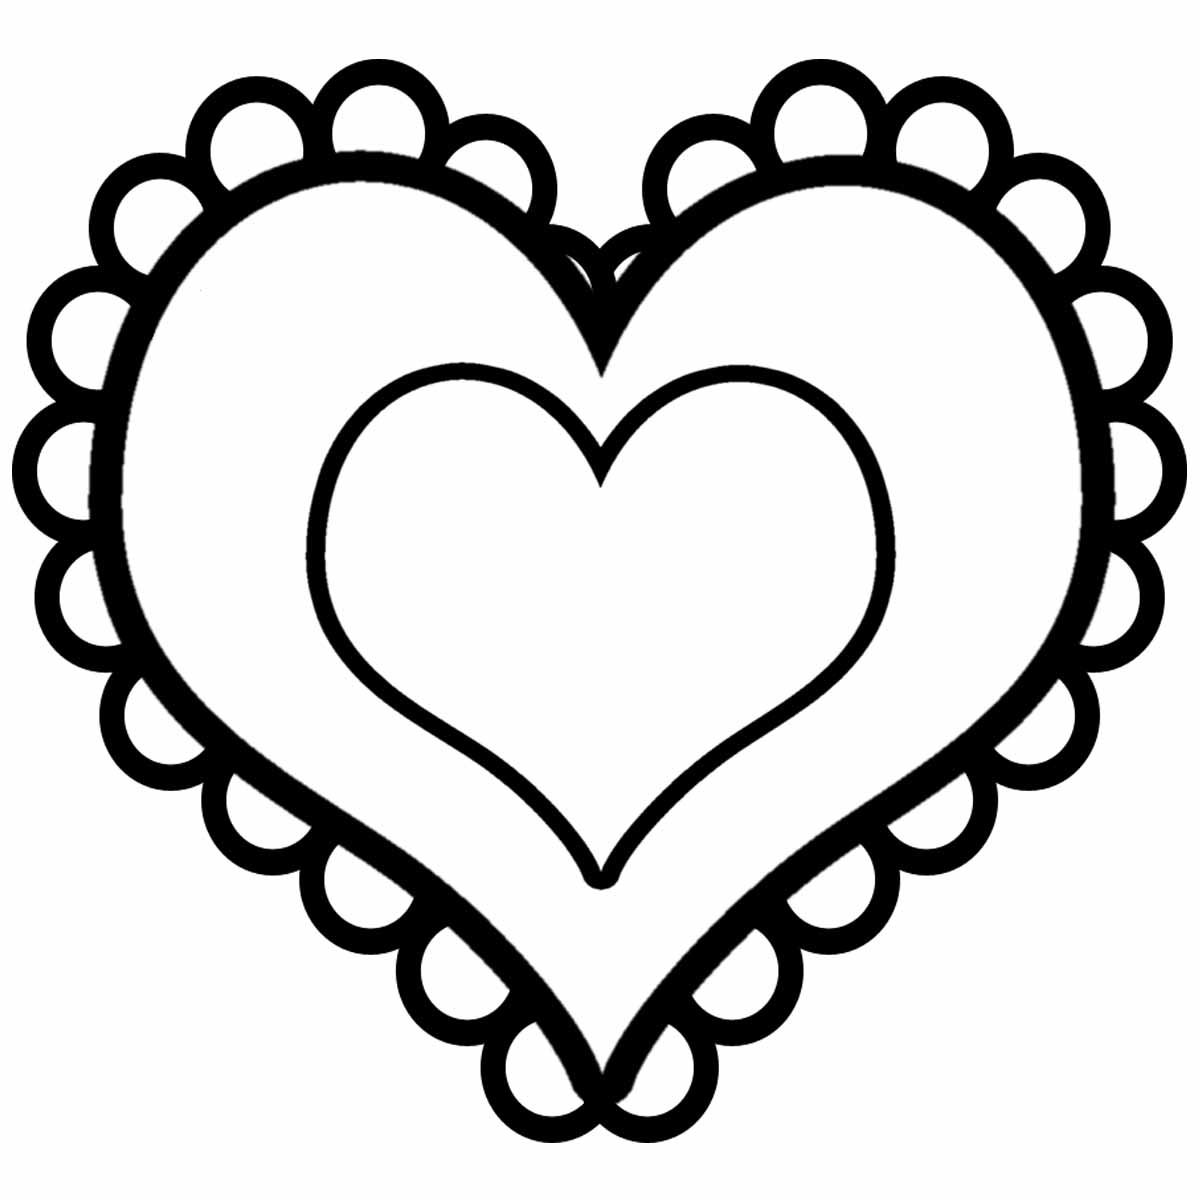 Valentine Heart Coloring Pages Best Coloring Pages For Kids Valentine Coloring Pages Heart Coloring Pages Valentines Day Coloring Page